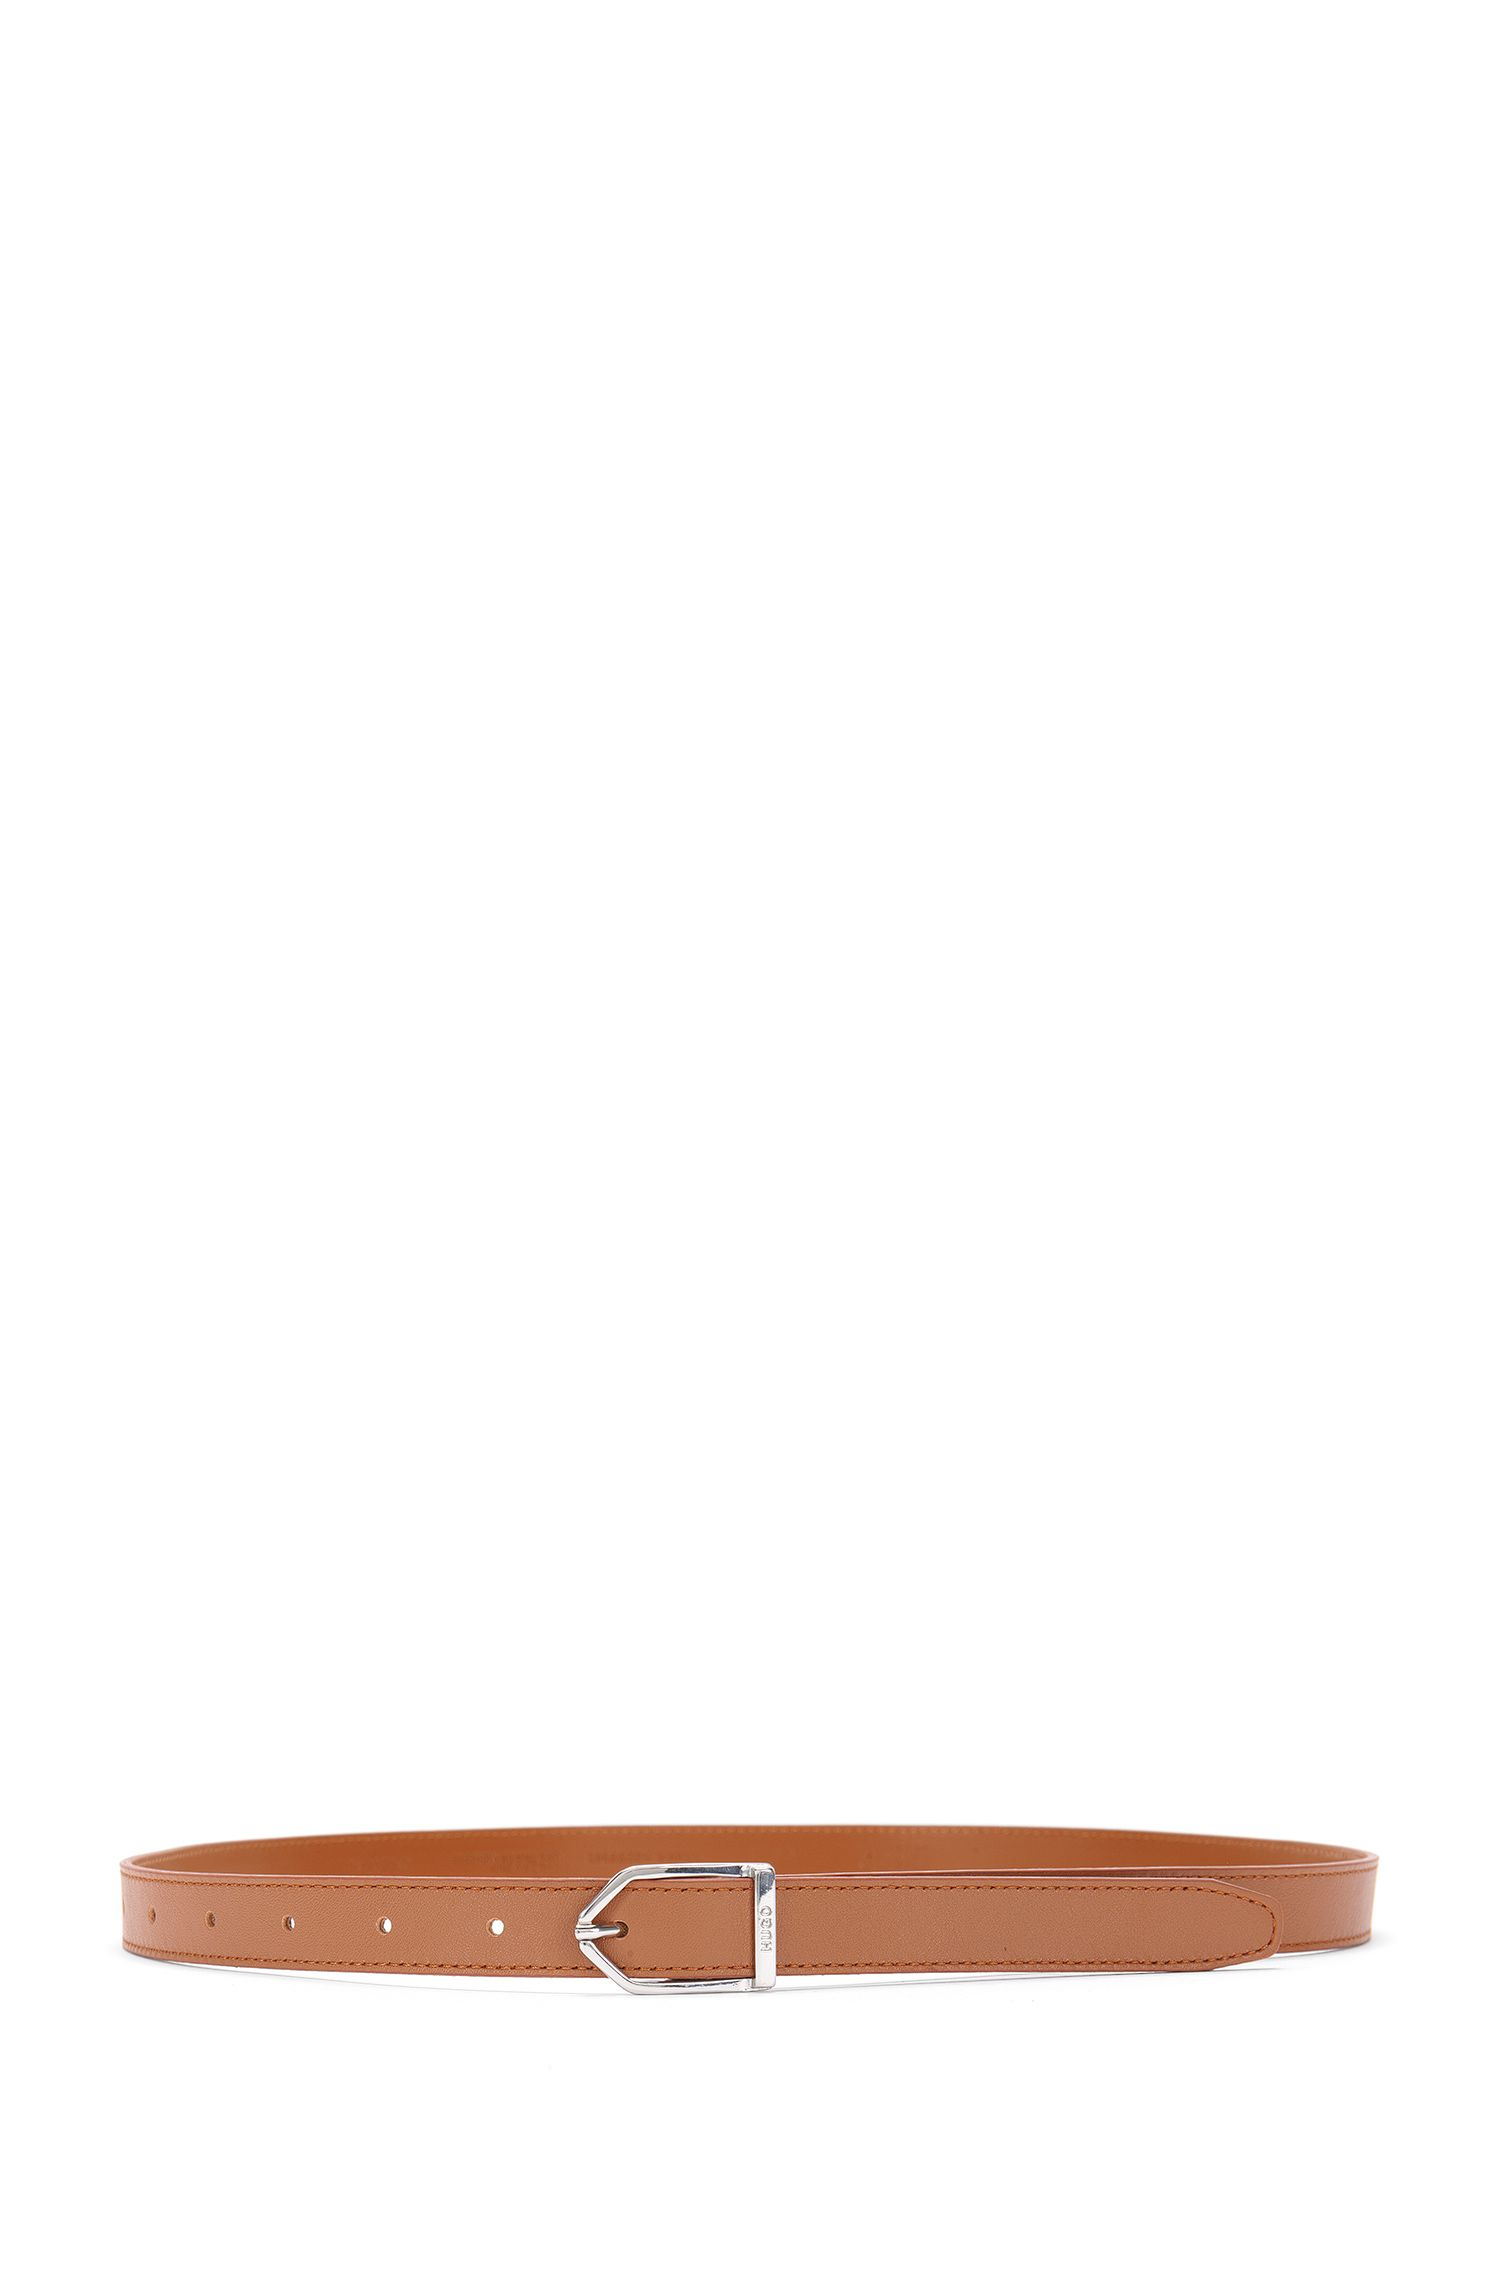 Slim leather belt with modern buckle